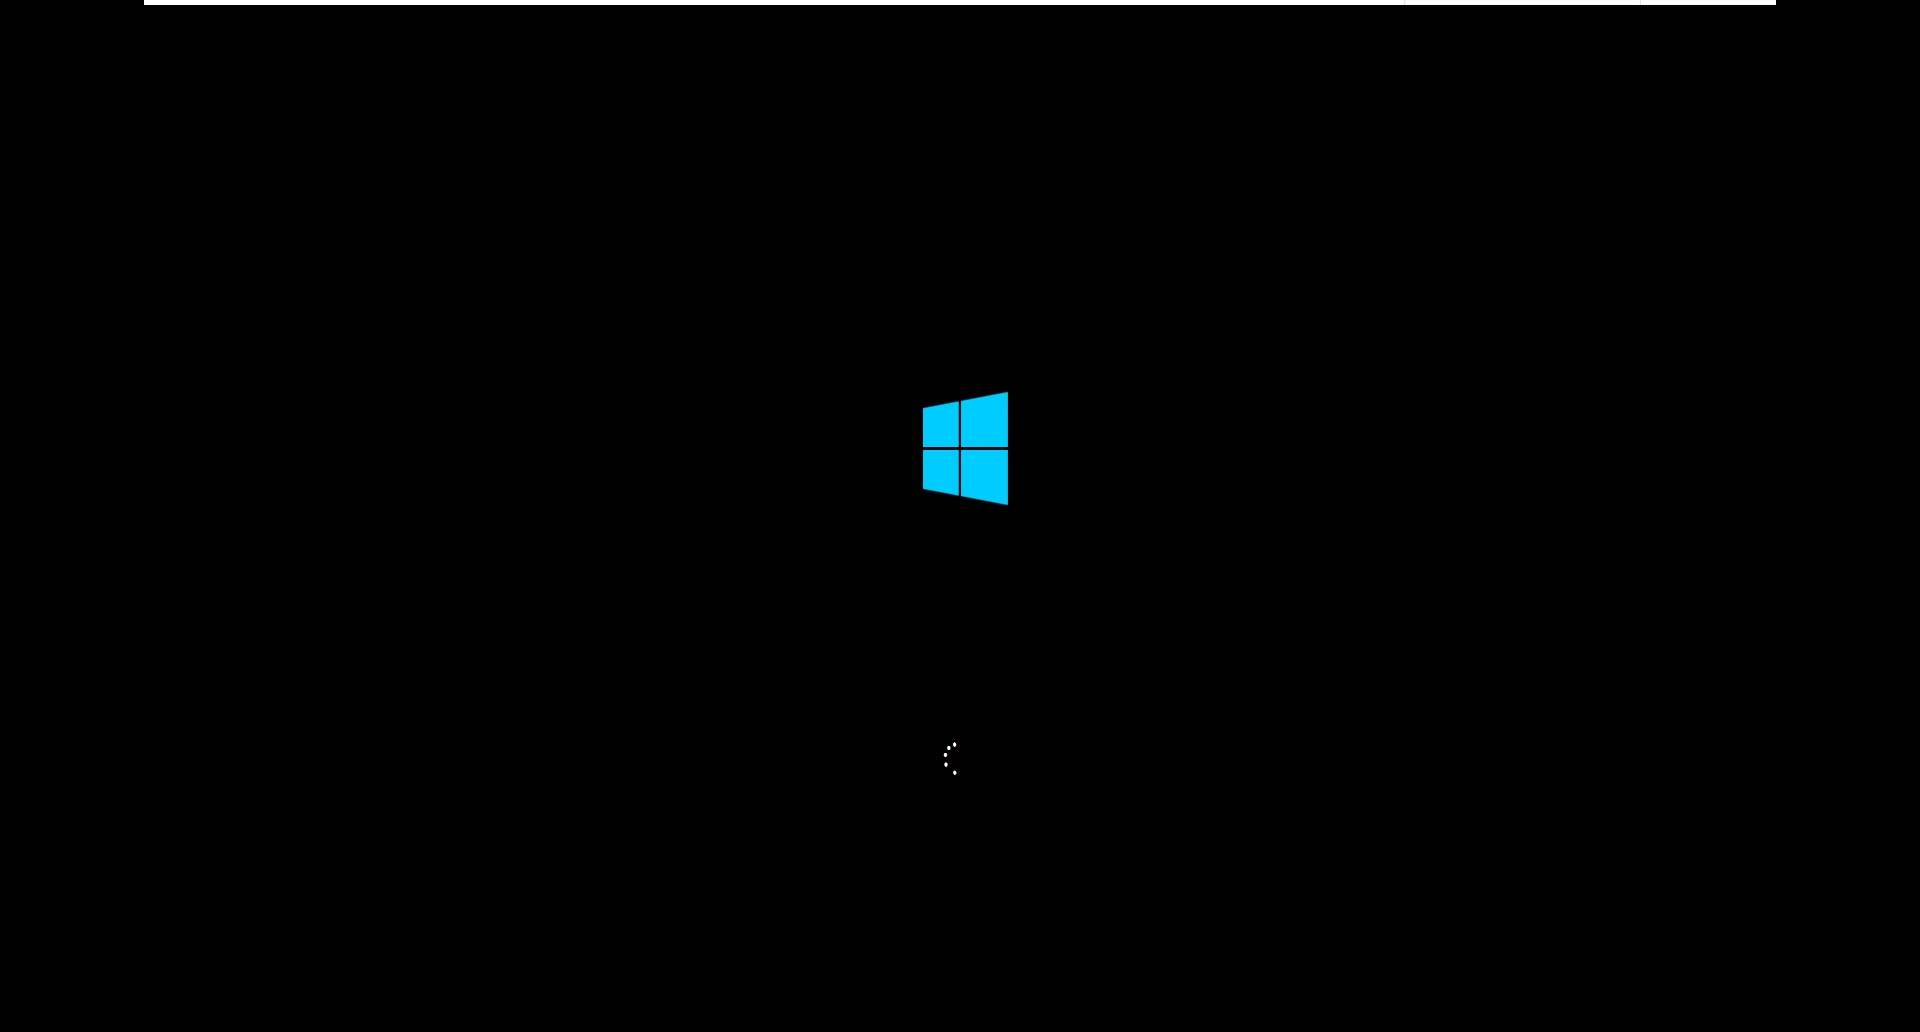 Windows-8.1-3.jpg